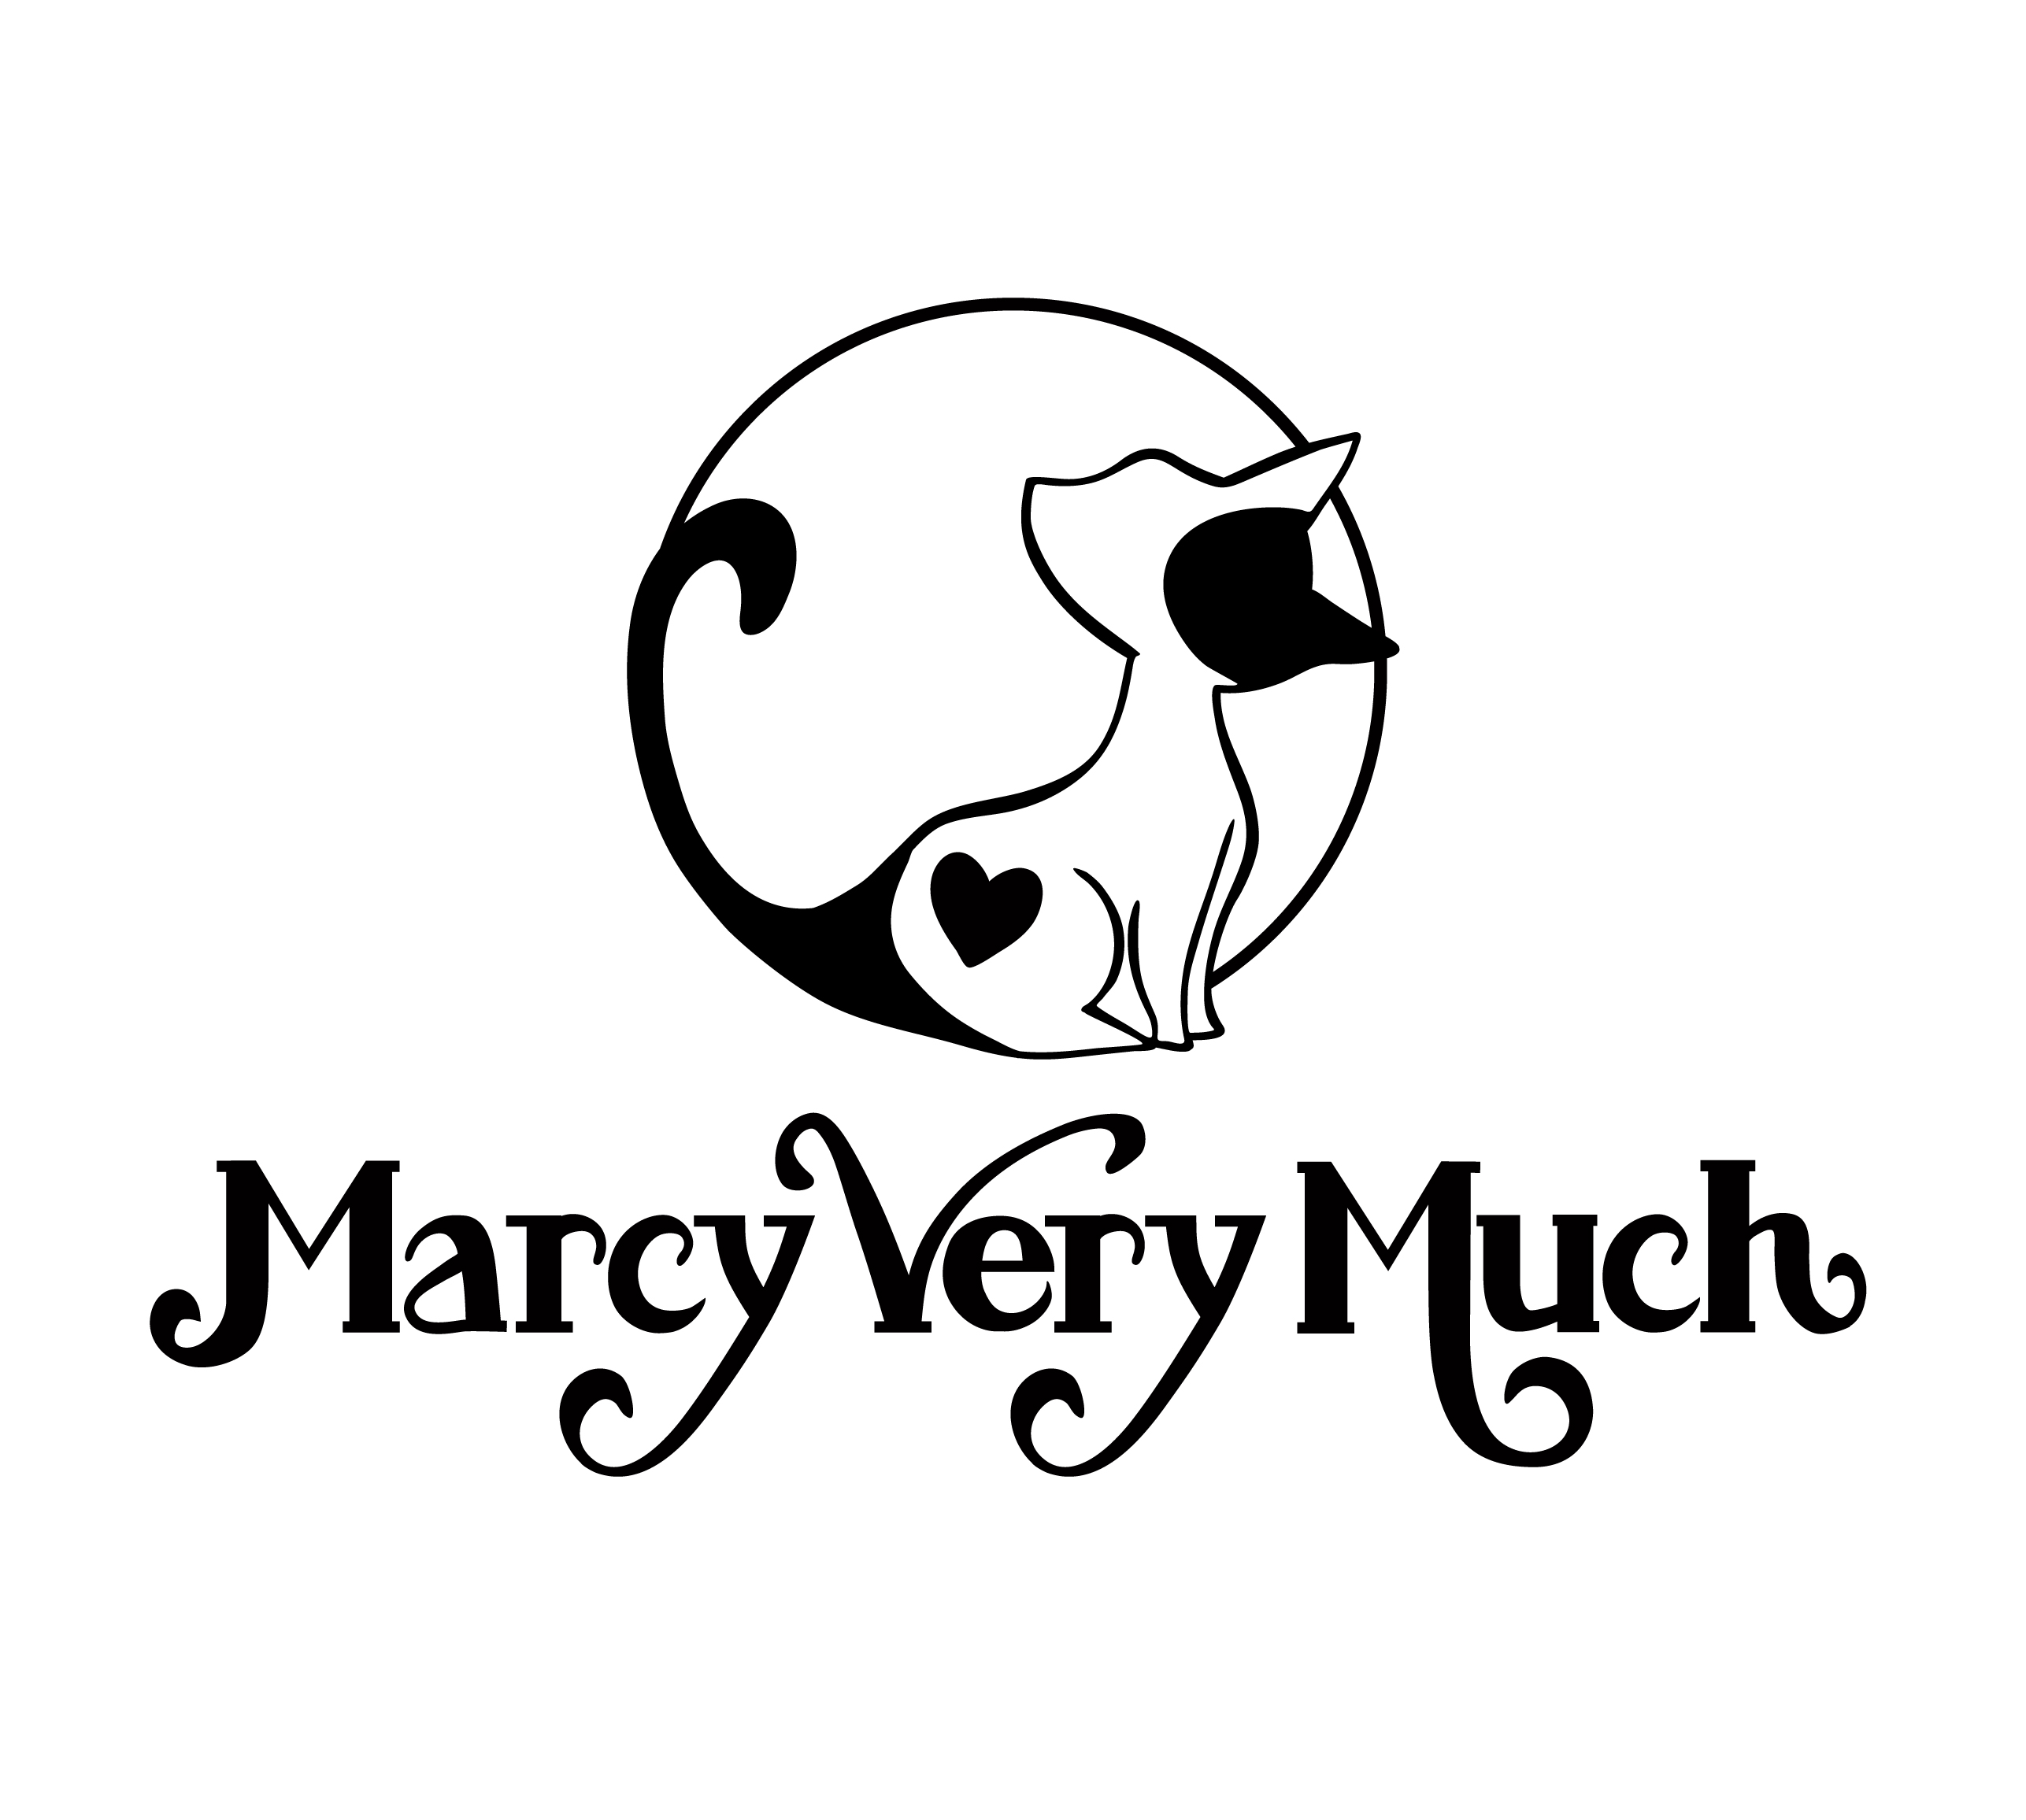 Marcy Very Much